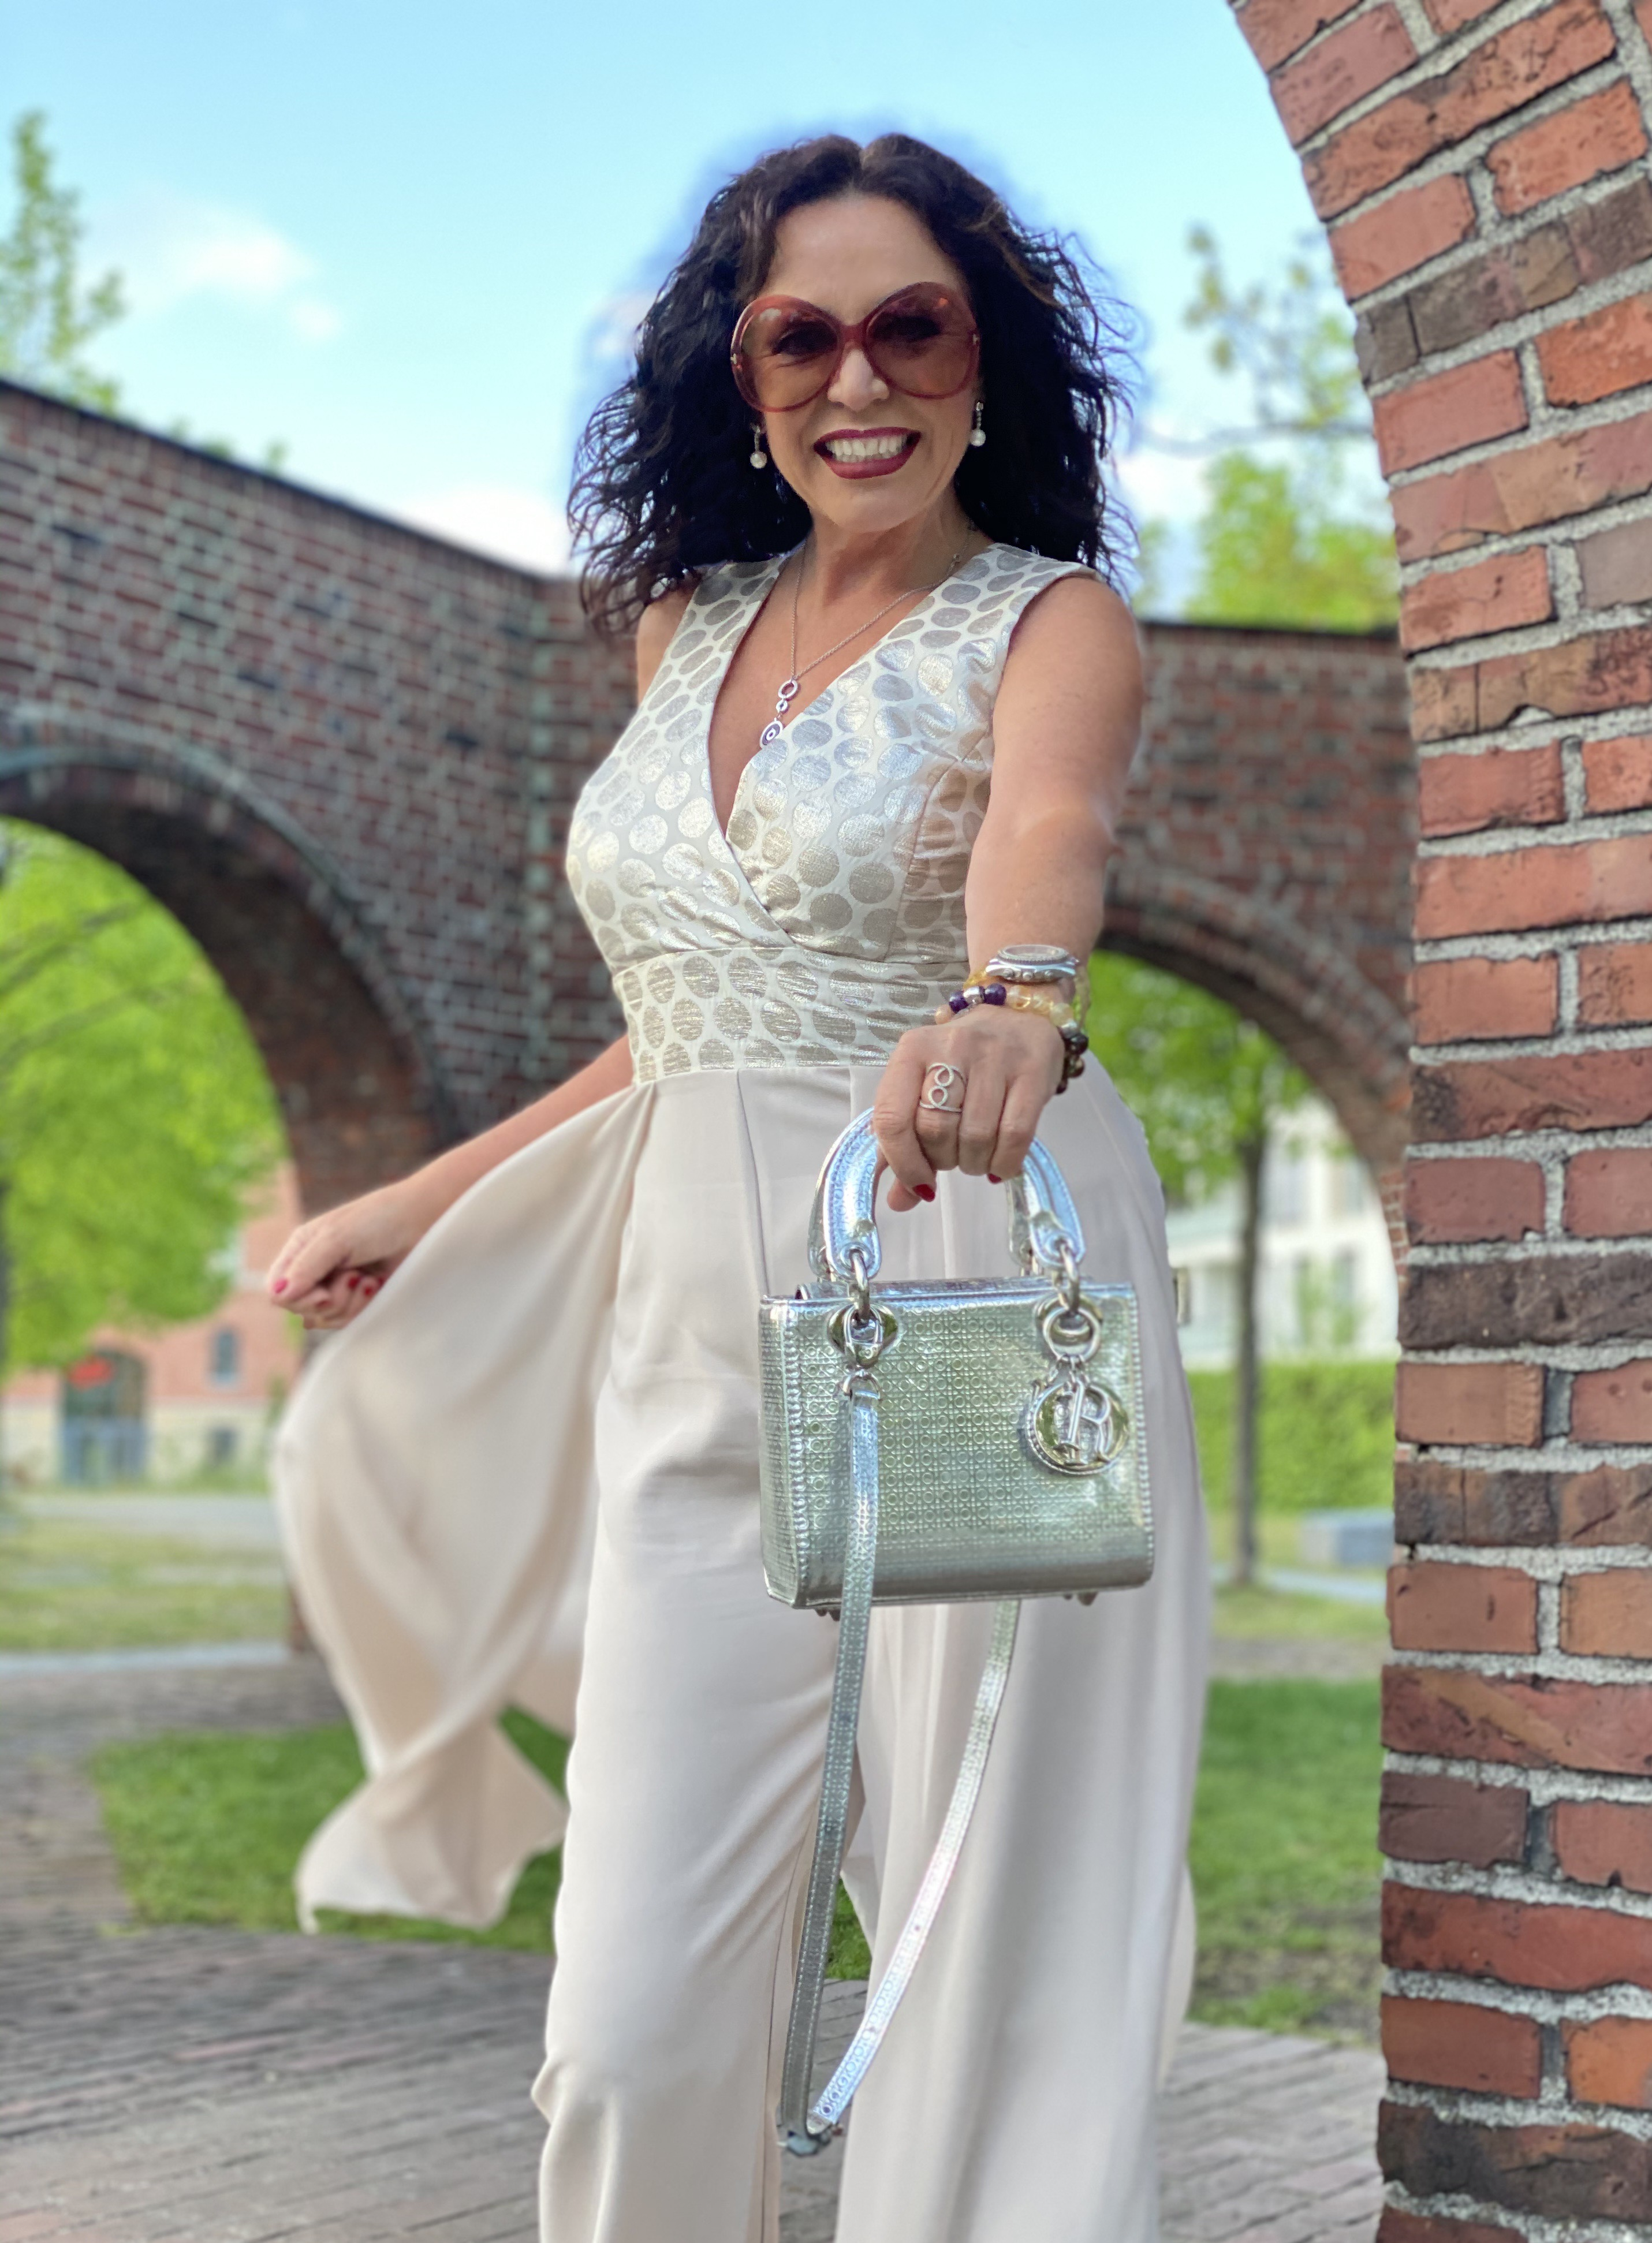 Partydress Rinascimento, Dior bag, Nine West shoes, mystyle, over50, eyewearblogger, Tom Ford shades, Sonnenbrillen, Brillenmode, italienische Mode, Partydress, Partystyle, Fashionblog Augsburg, Fashionblog ageless, Jewelryblogger, streetstyle, cochastyle, Fashionista, shoelover